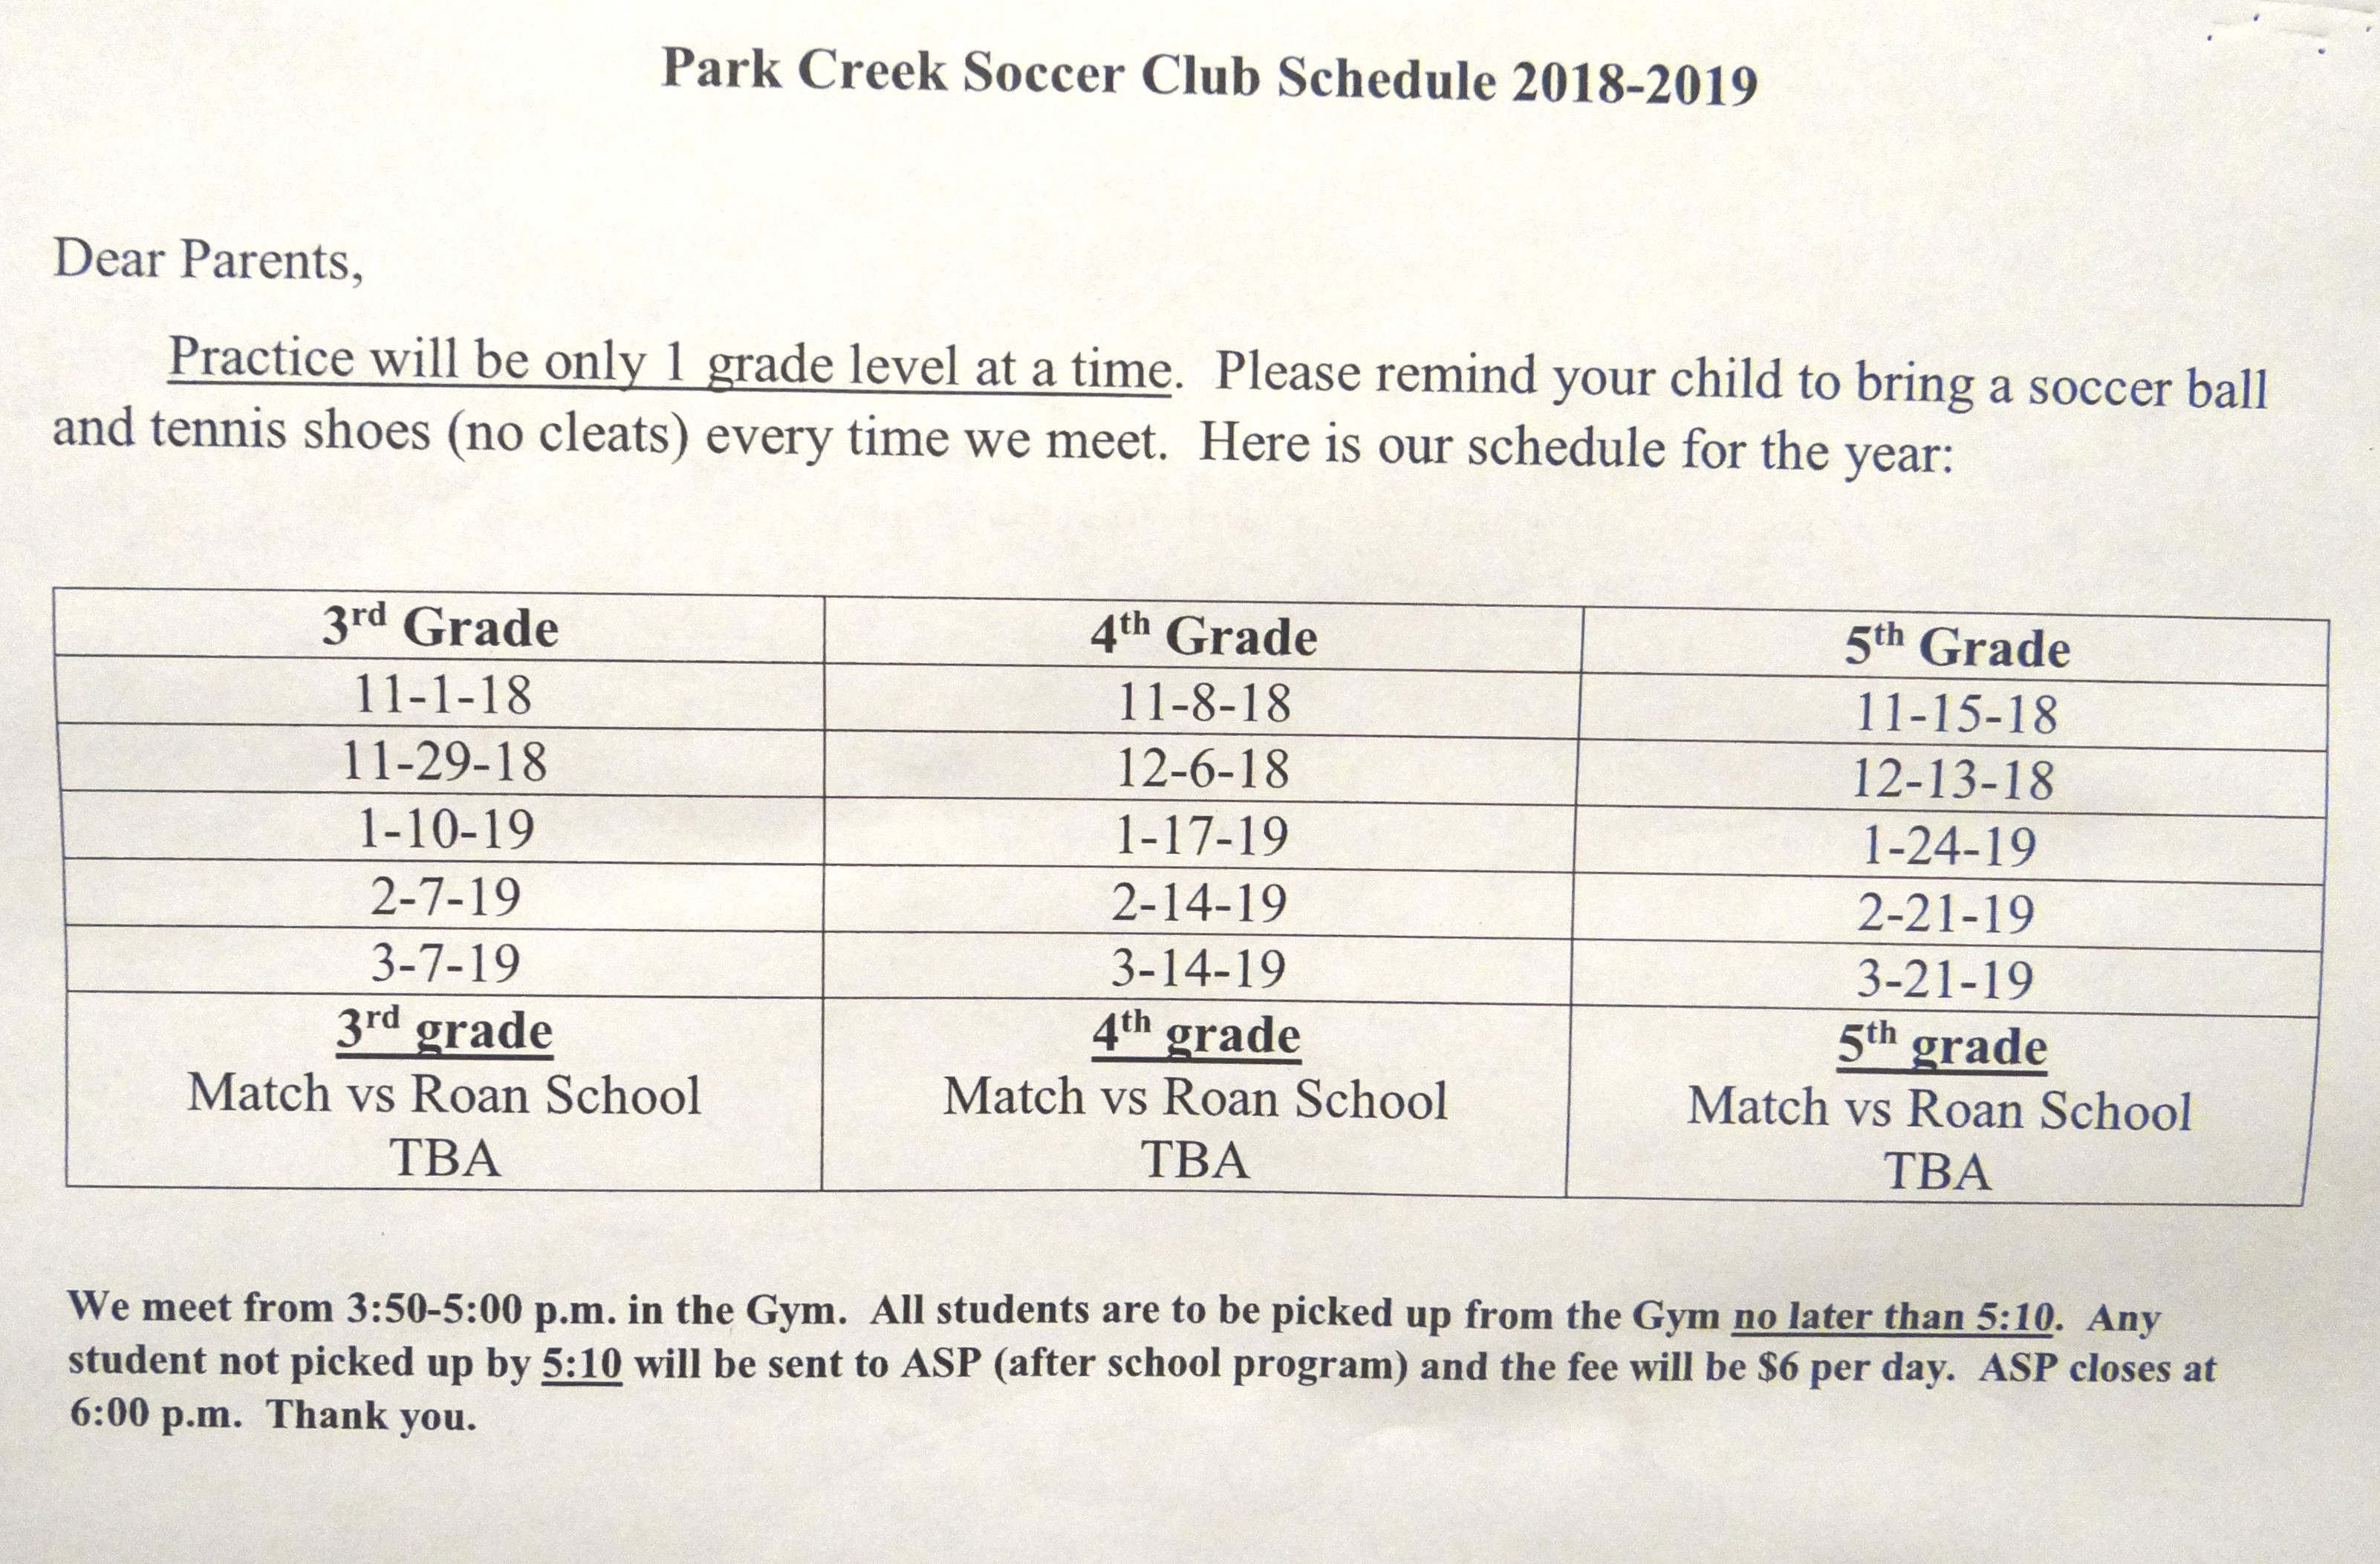 soccer club schedule